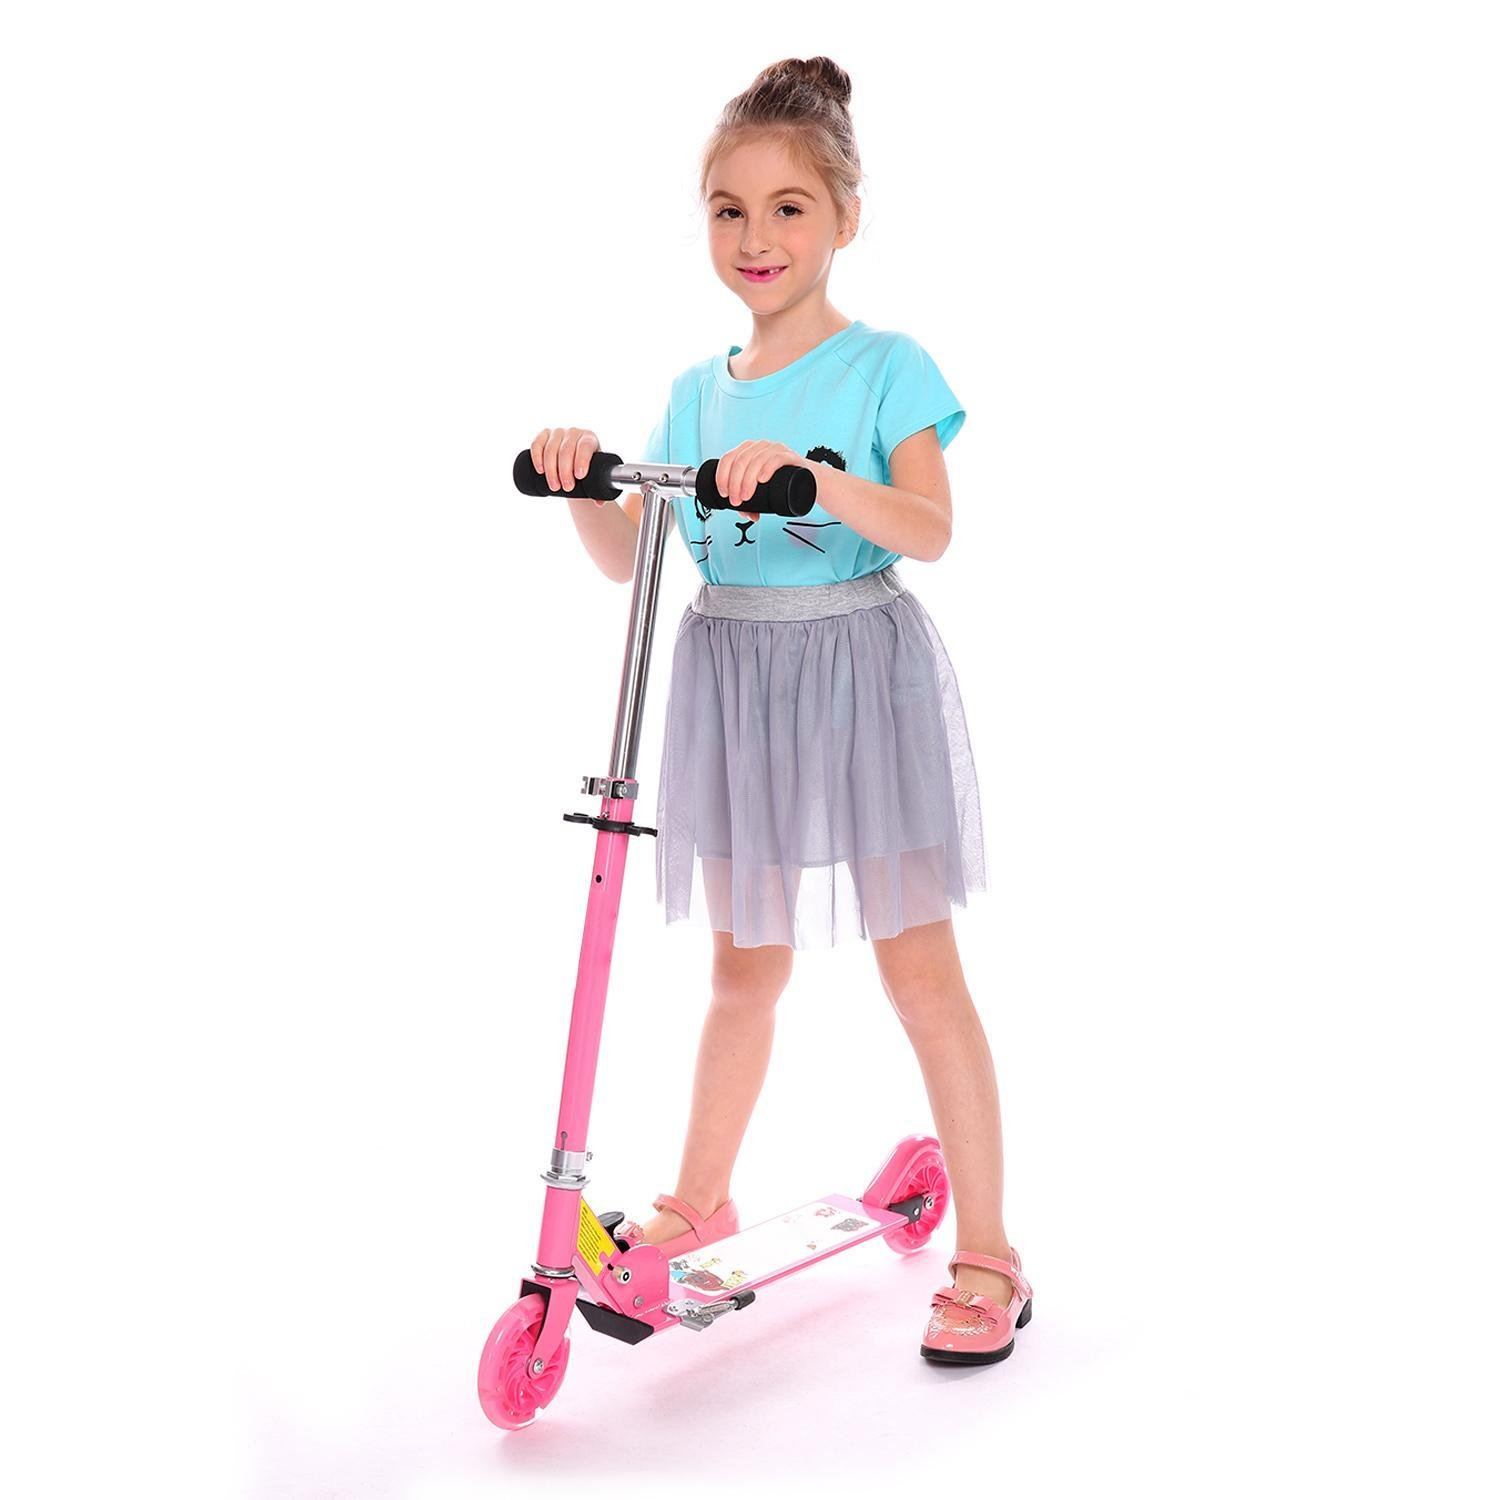 Foldable Kids Kick Scooter with LED Light Up Wheels, Adjustable Height Handle Push Foot scooter for Boys Girls Children 3+ Years Old, Pink/Blue